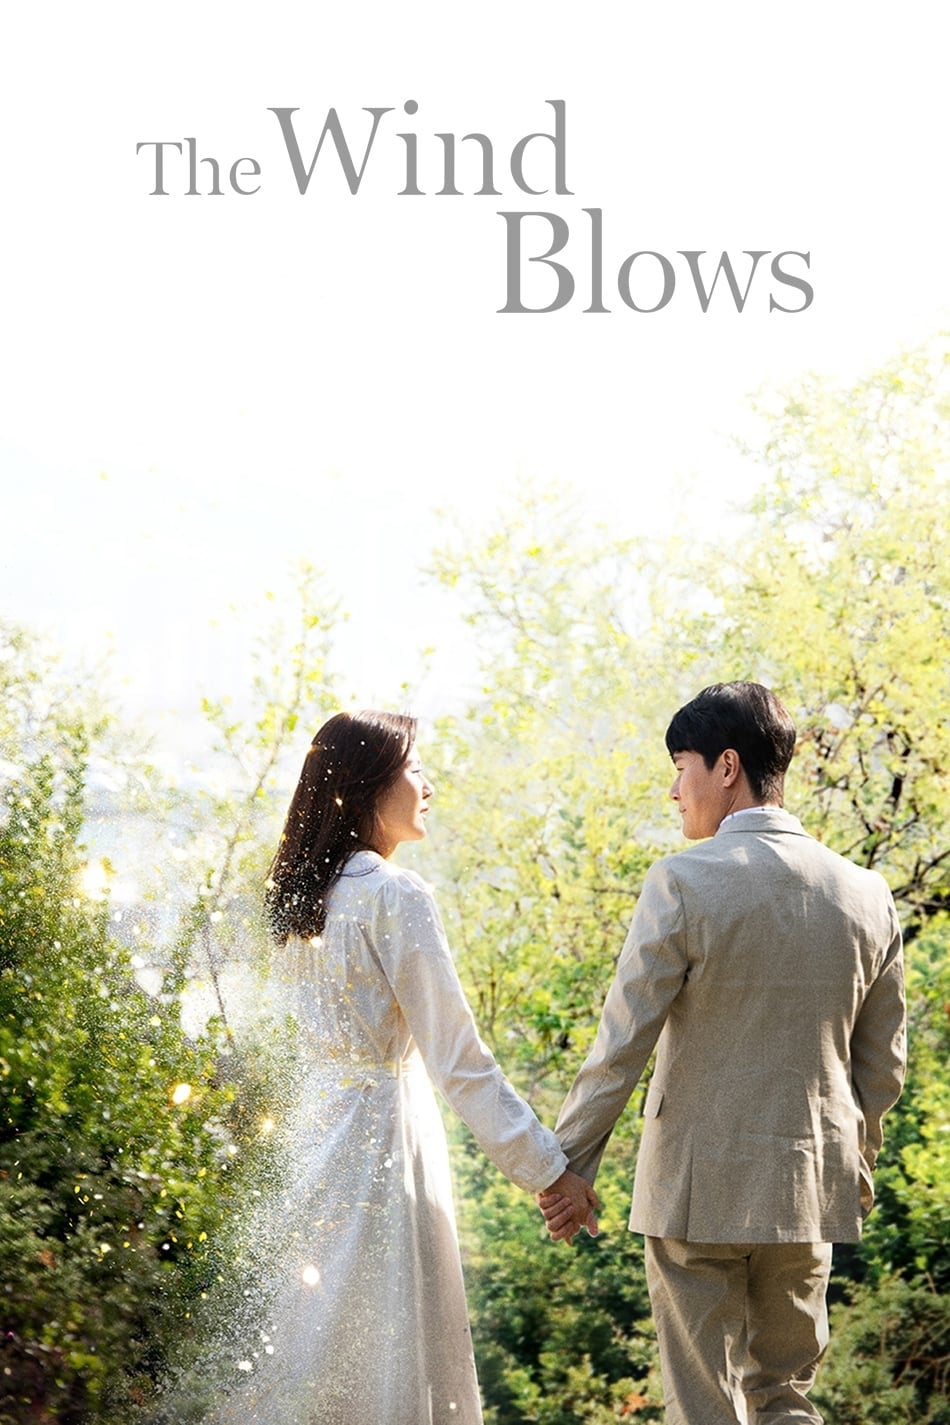 The Wind Blows (2019)